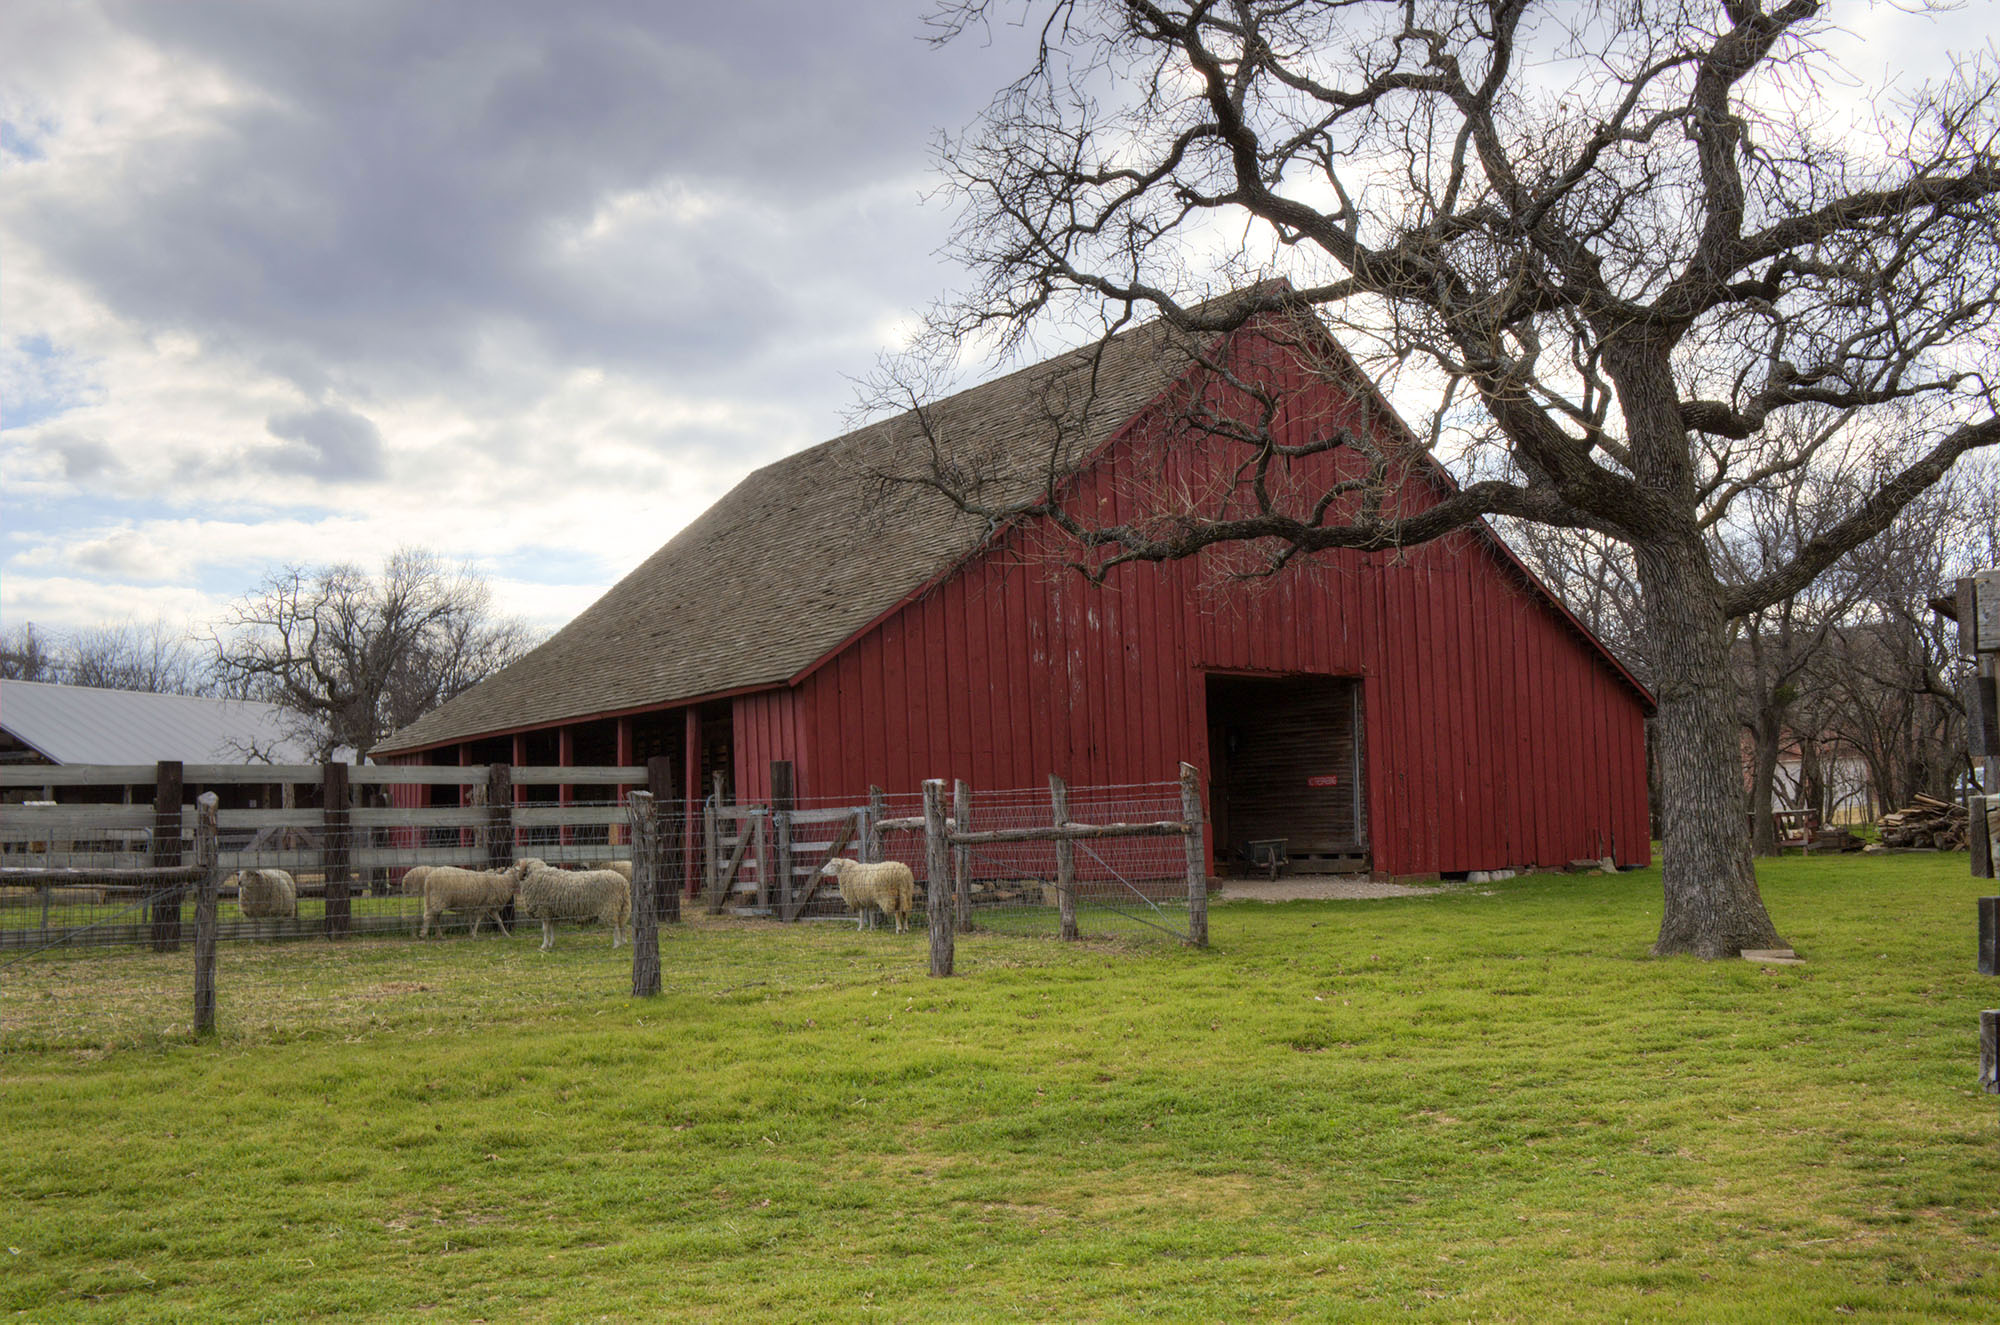 The Red Barn Overlooks the Nash Farm Property